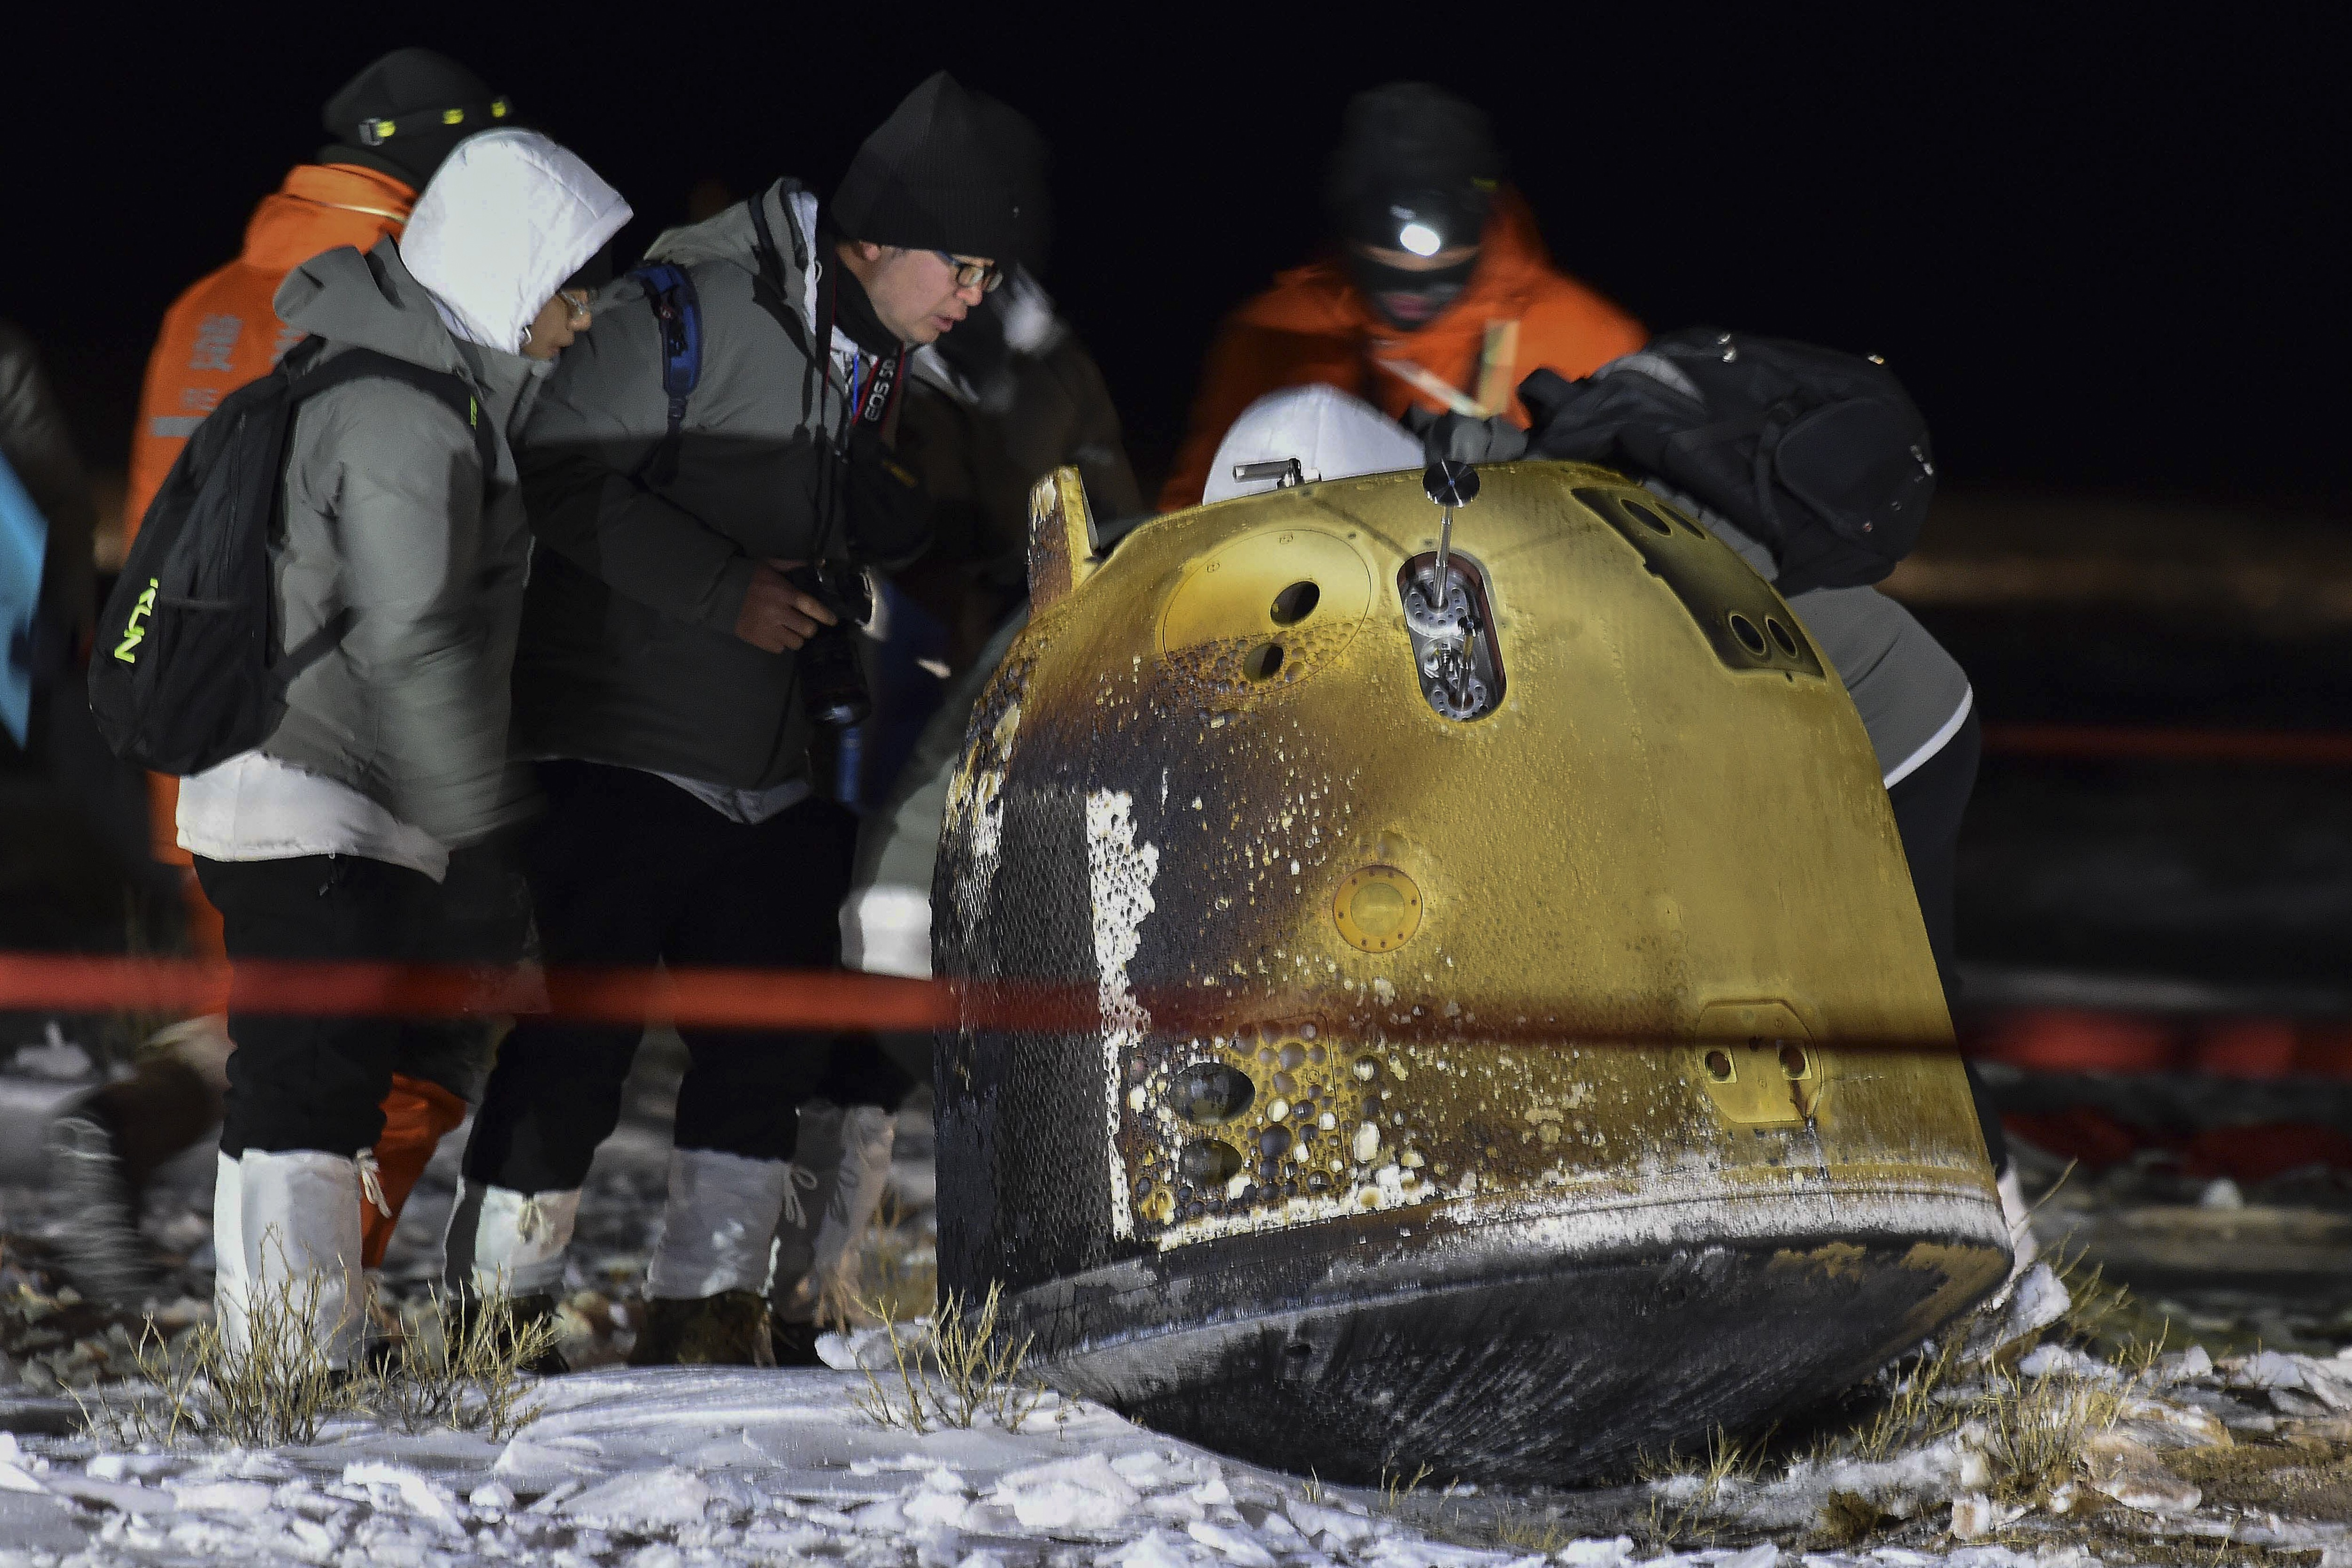 The Chang'e 5 return vehicle during recovery operations (Credit: Xinhua)